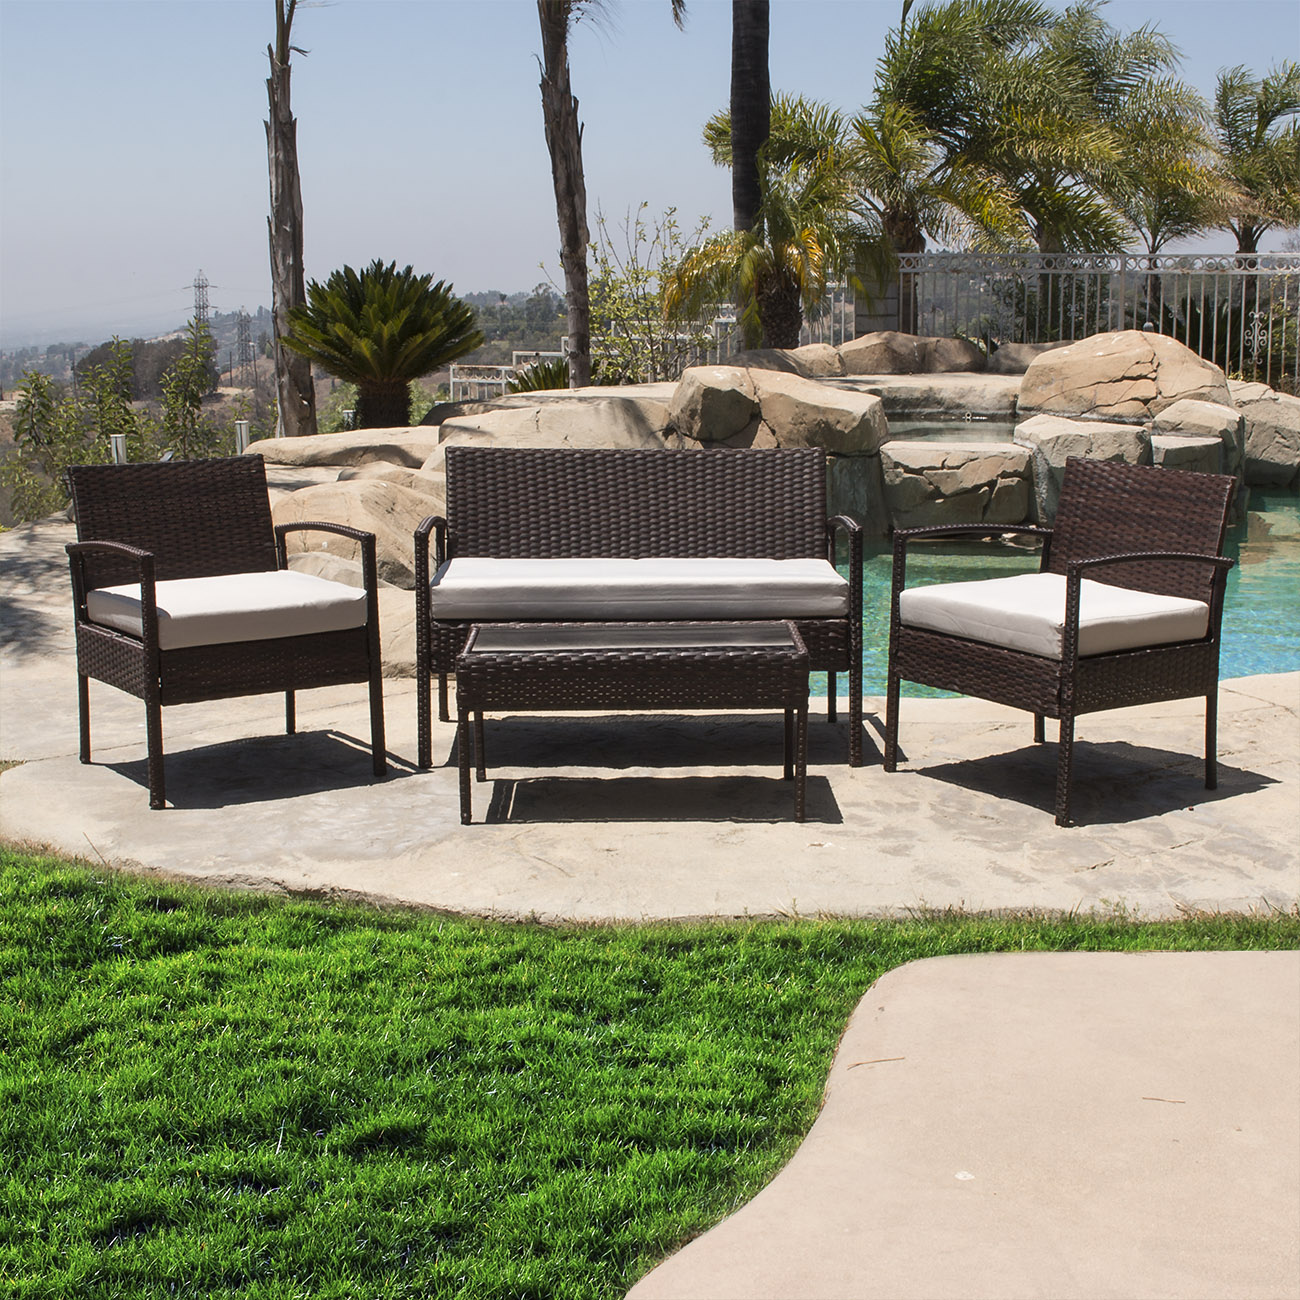 Belleze 4 PCS Outdoor Garden Patio Rattan Furniture Sets Cushioned Seat Wicker, Brown